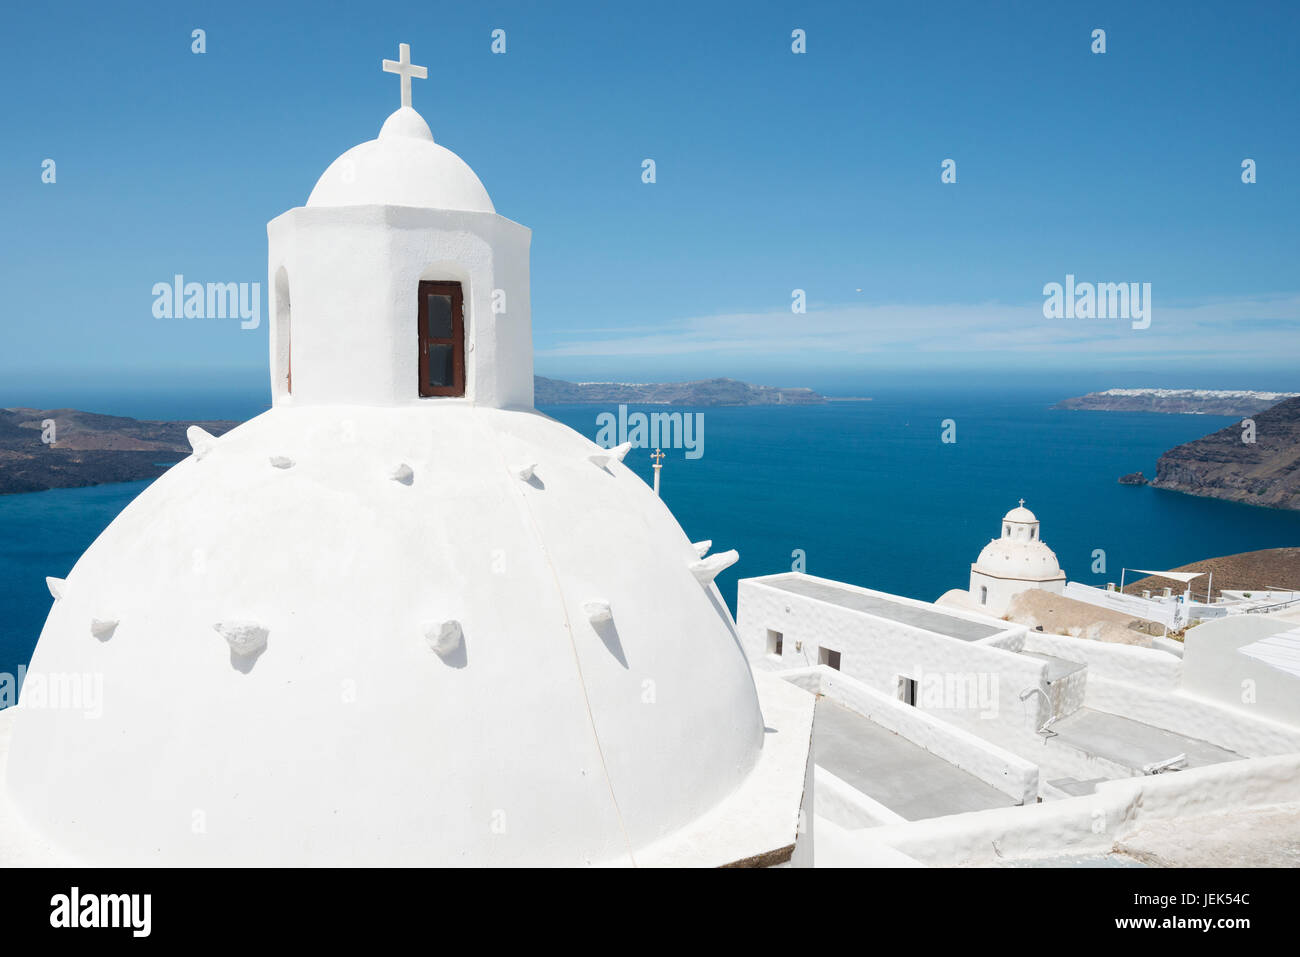 White cupola of church with Aegean sea and volcanic island in background, Santorini, Greece Stock Photo